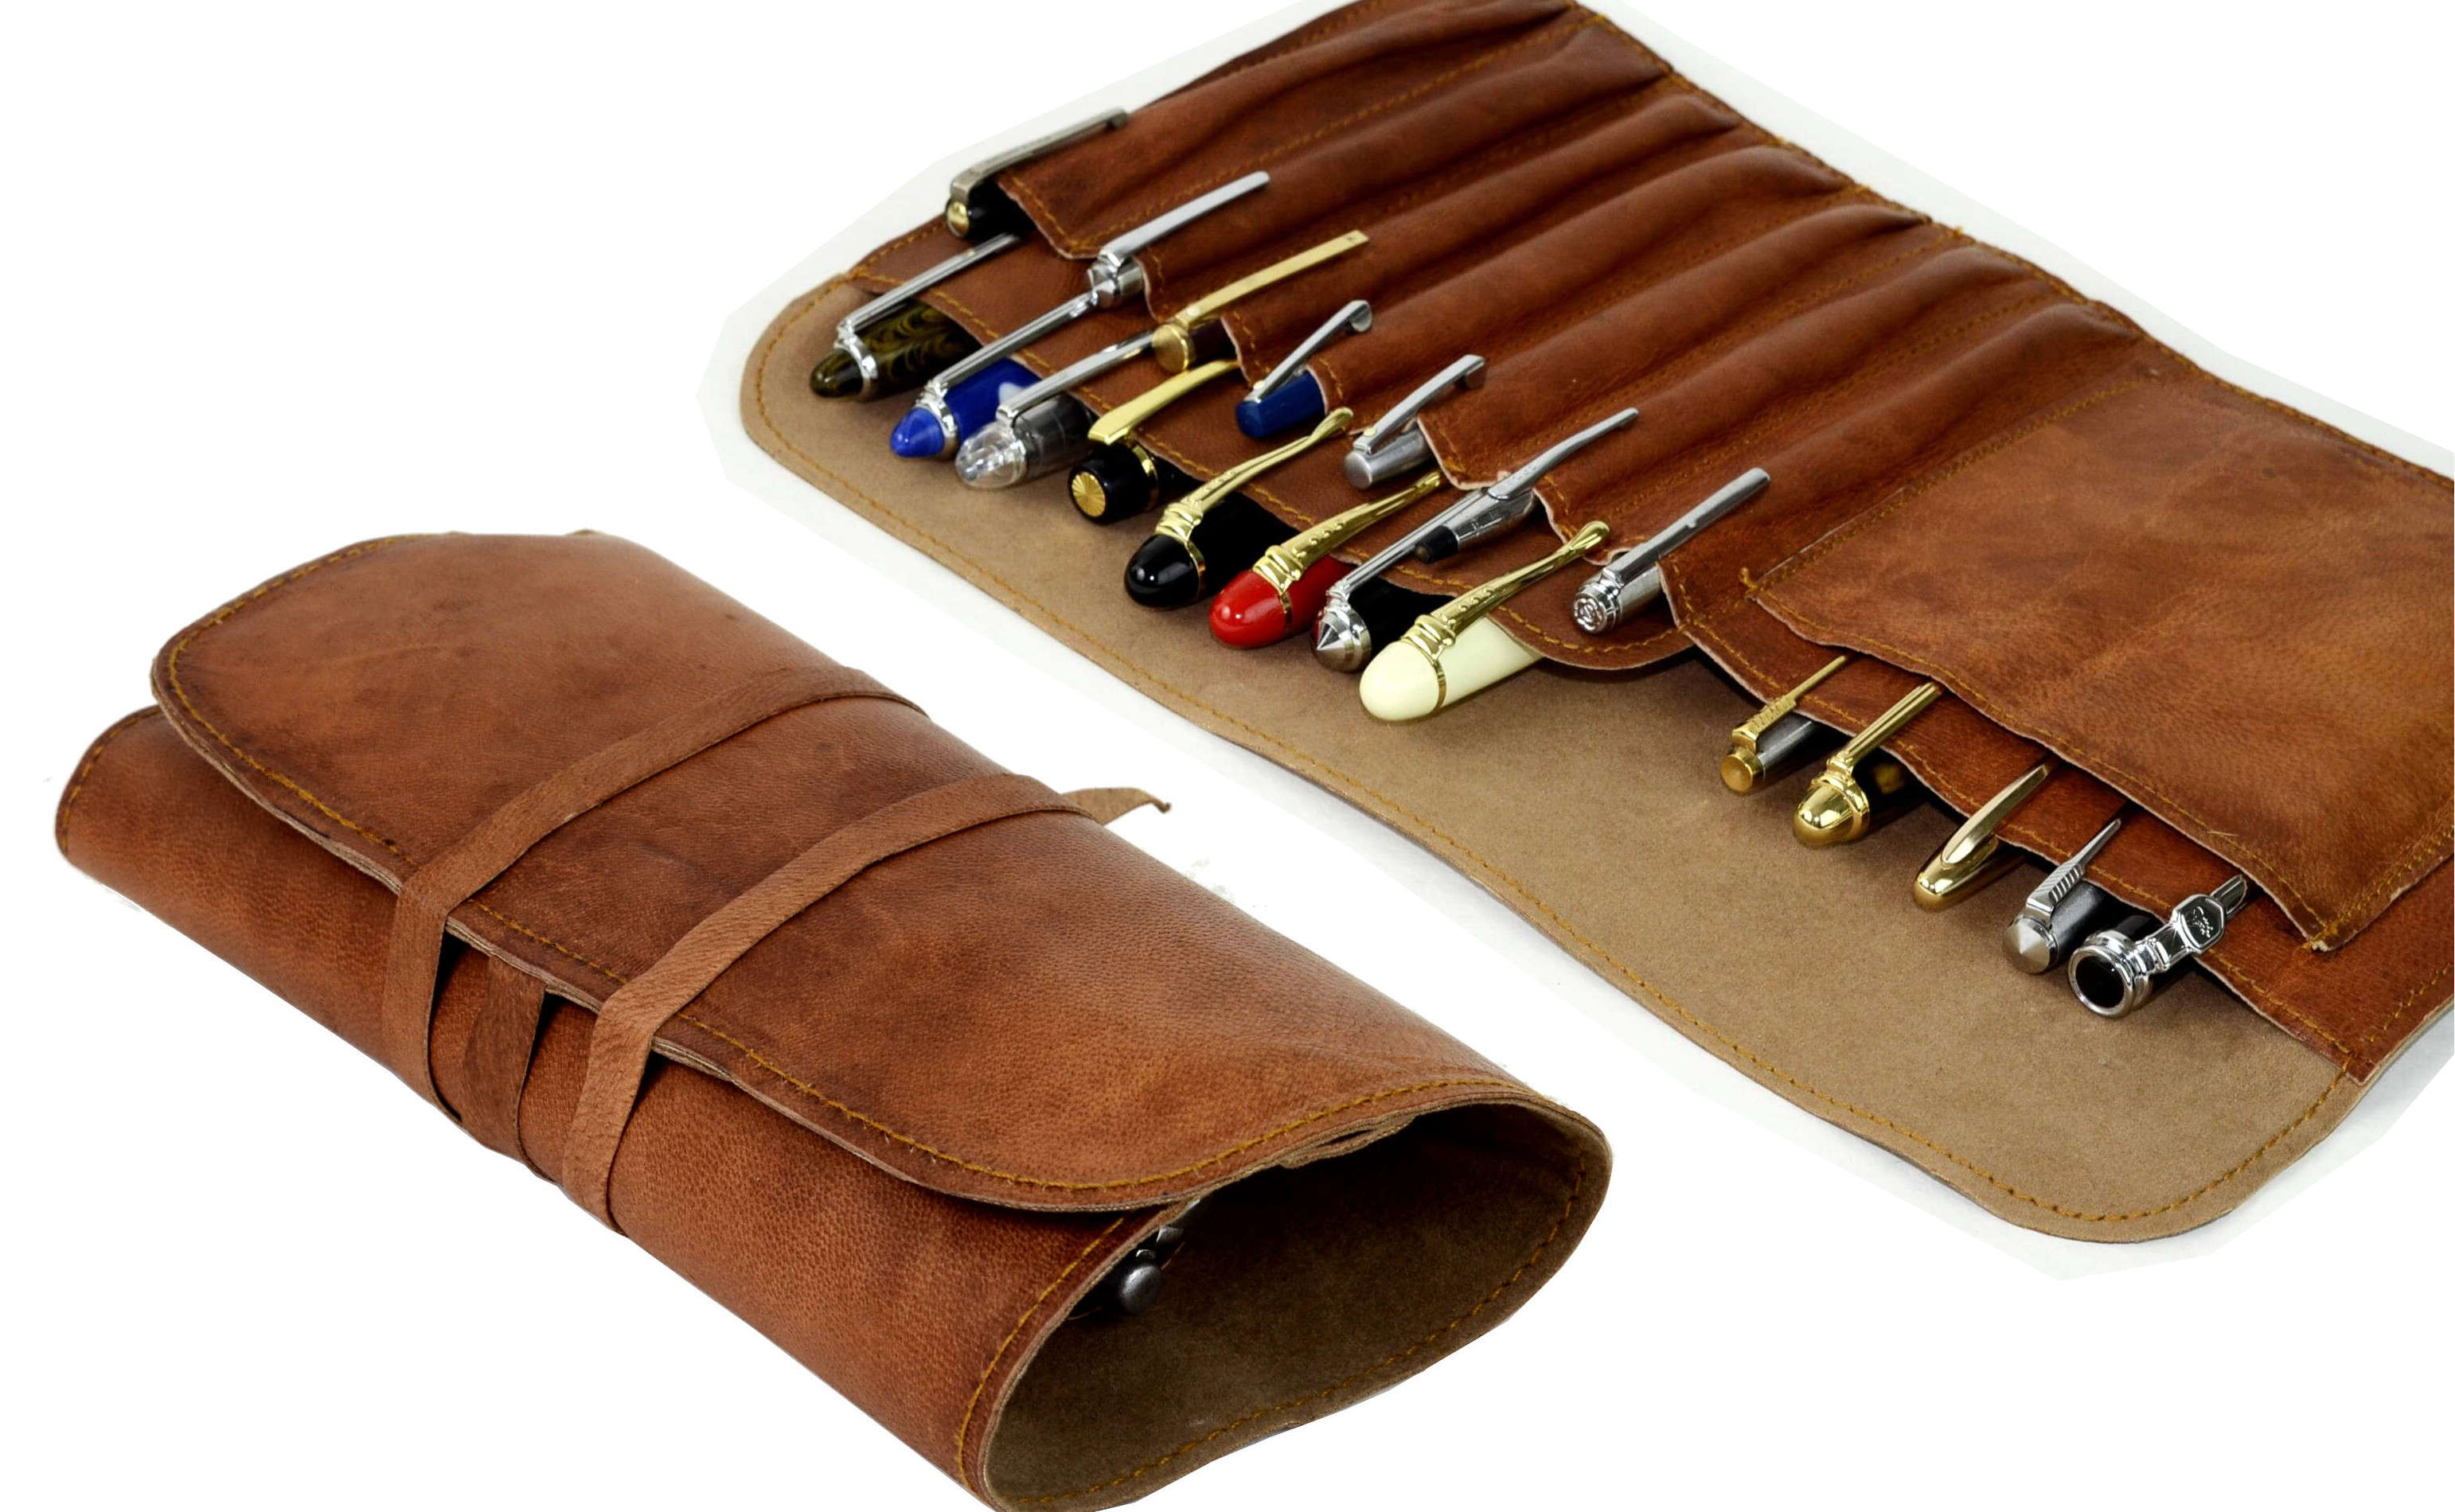 Vintage Pens: : Genuine Leather pen rollup case: Leather Pen rollups